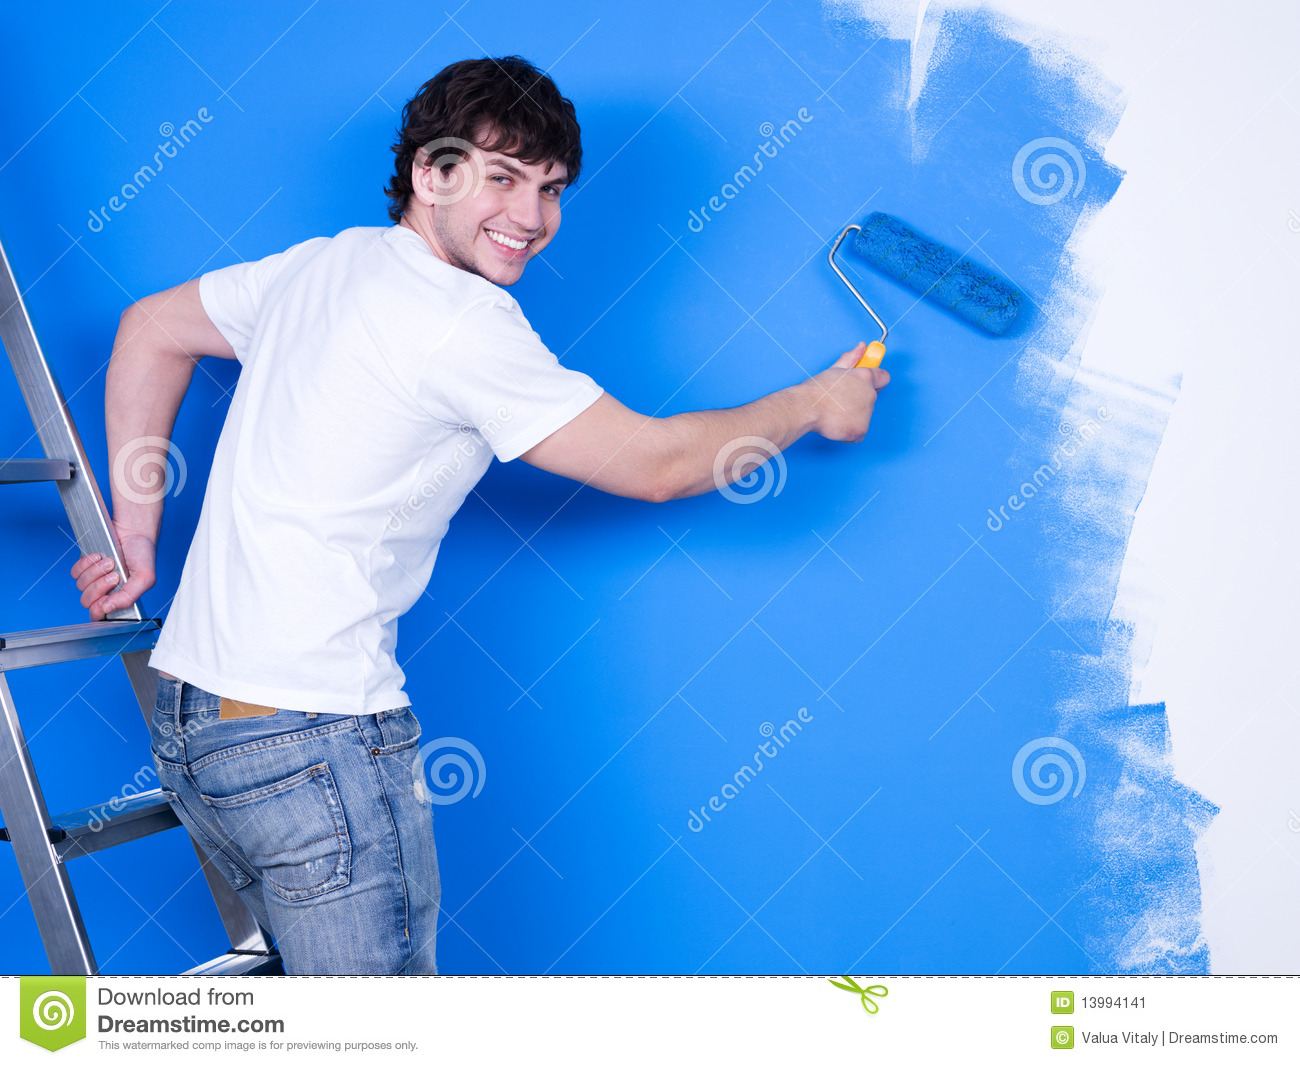 happy-man-painting-wall-13994141.jpg